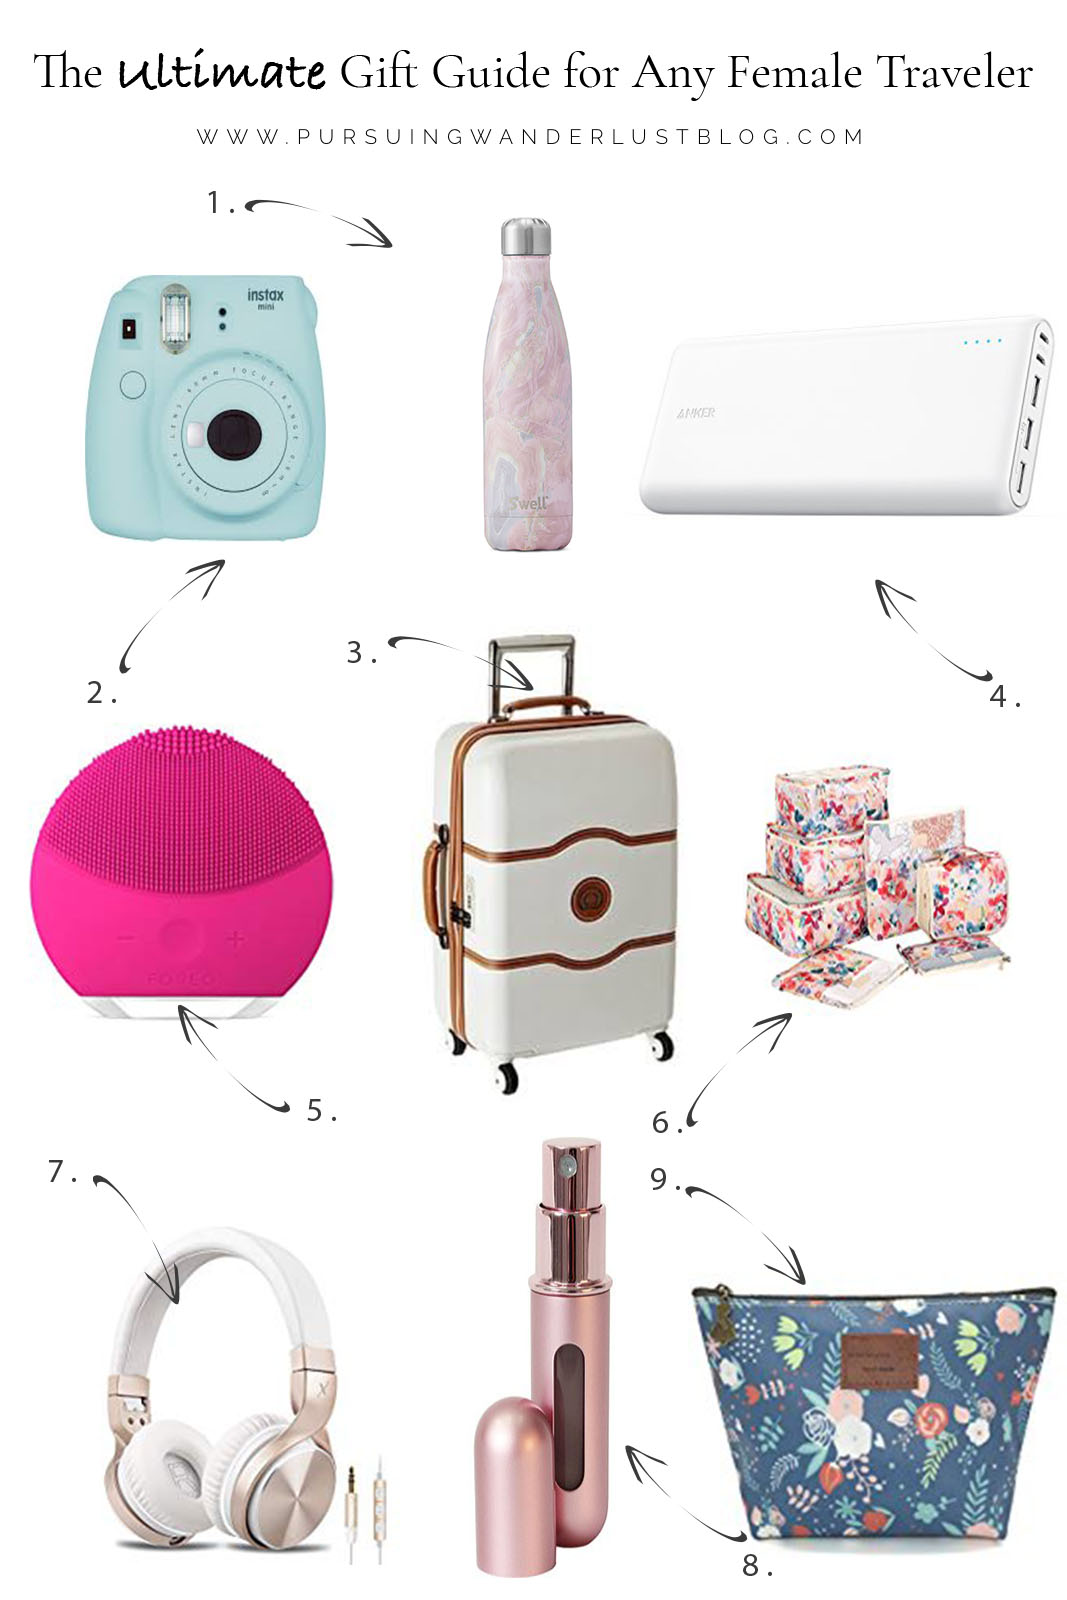 The Ultimate Gift Guide for Any Female Traveler